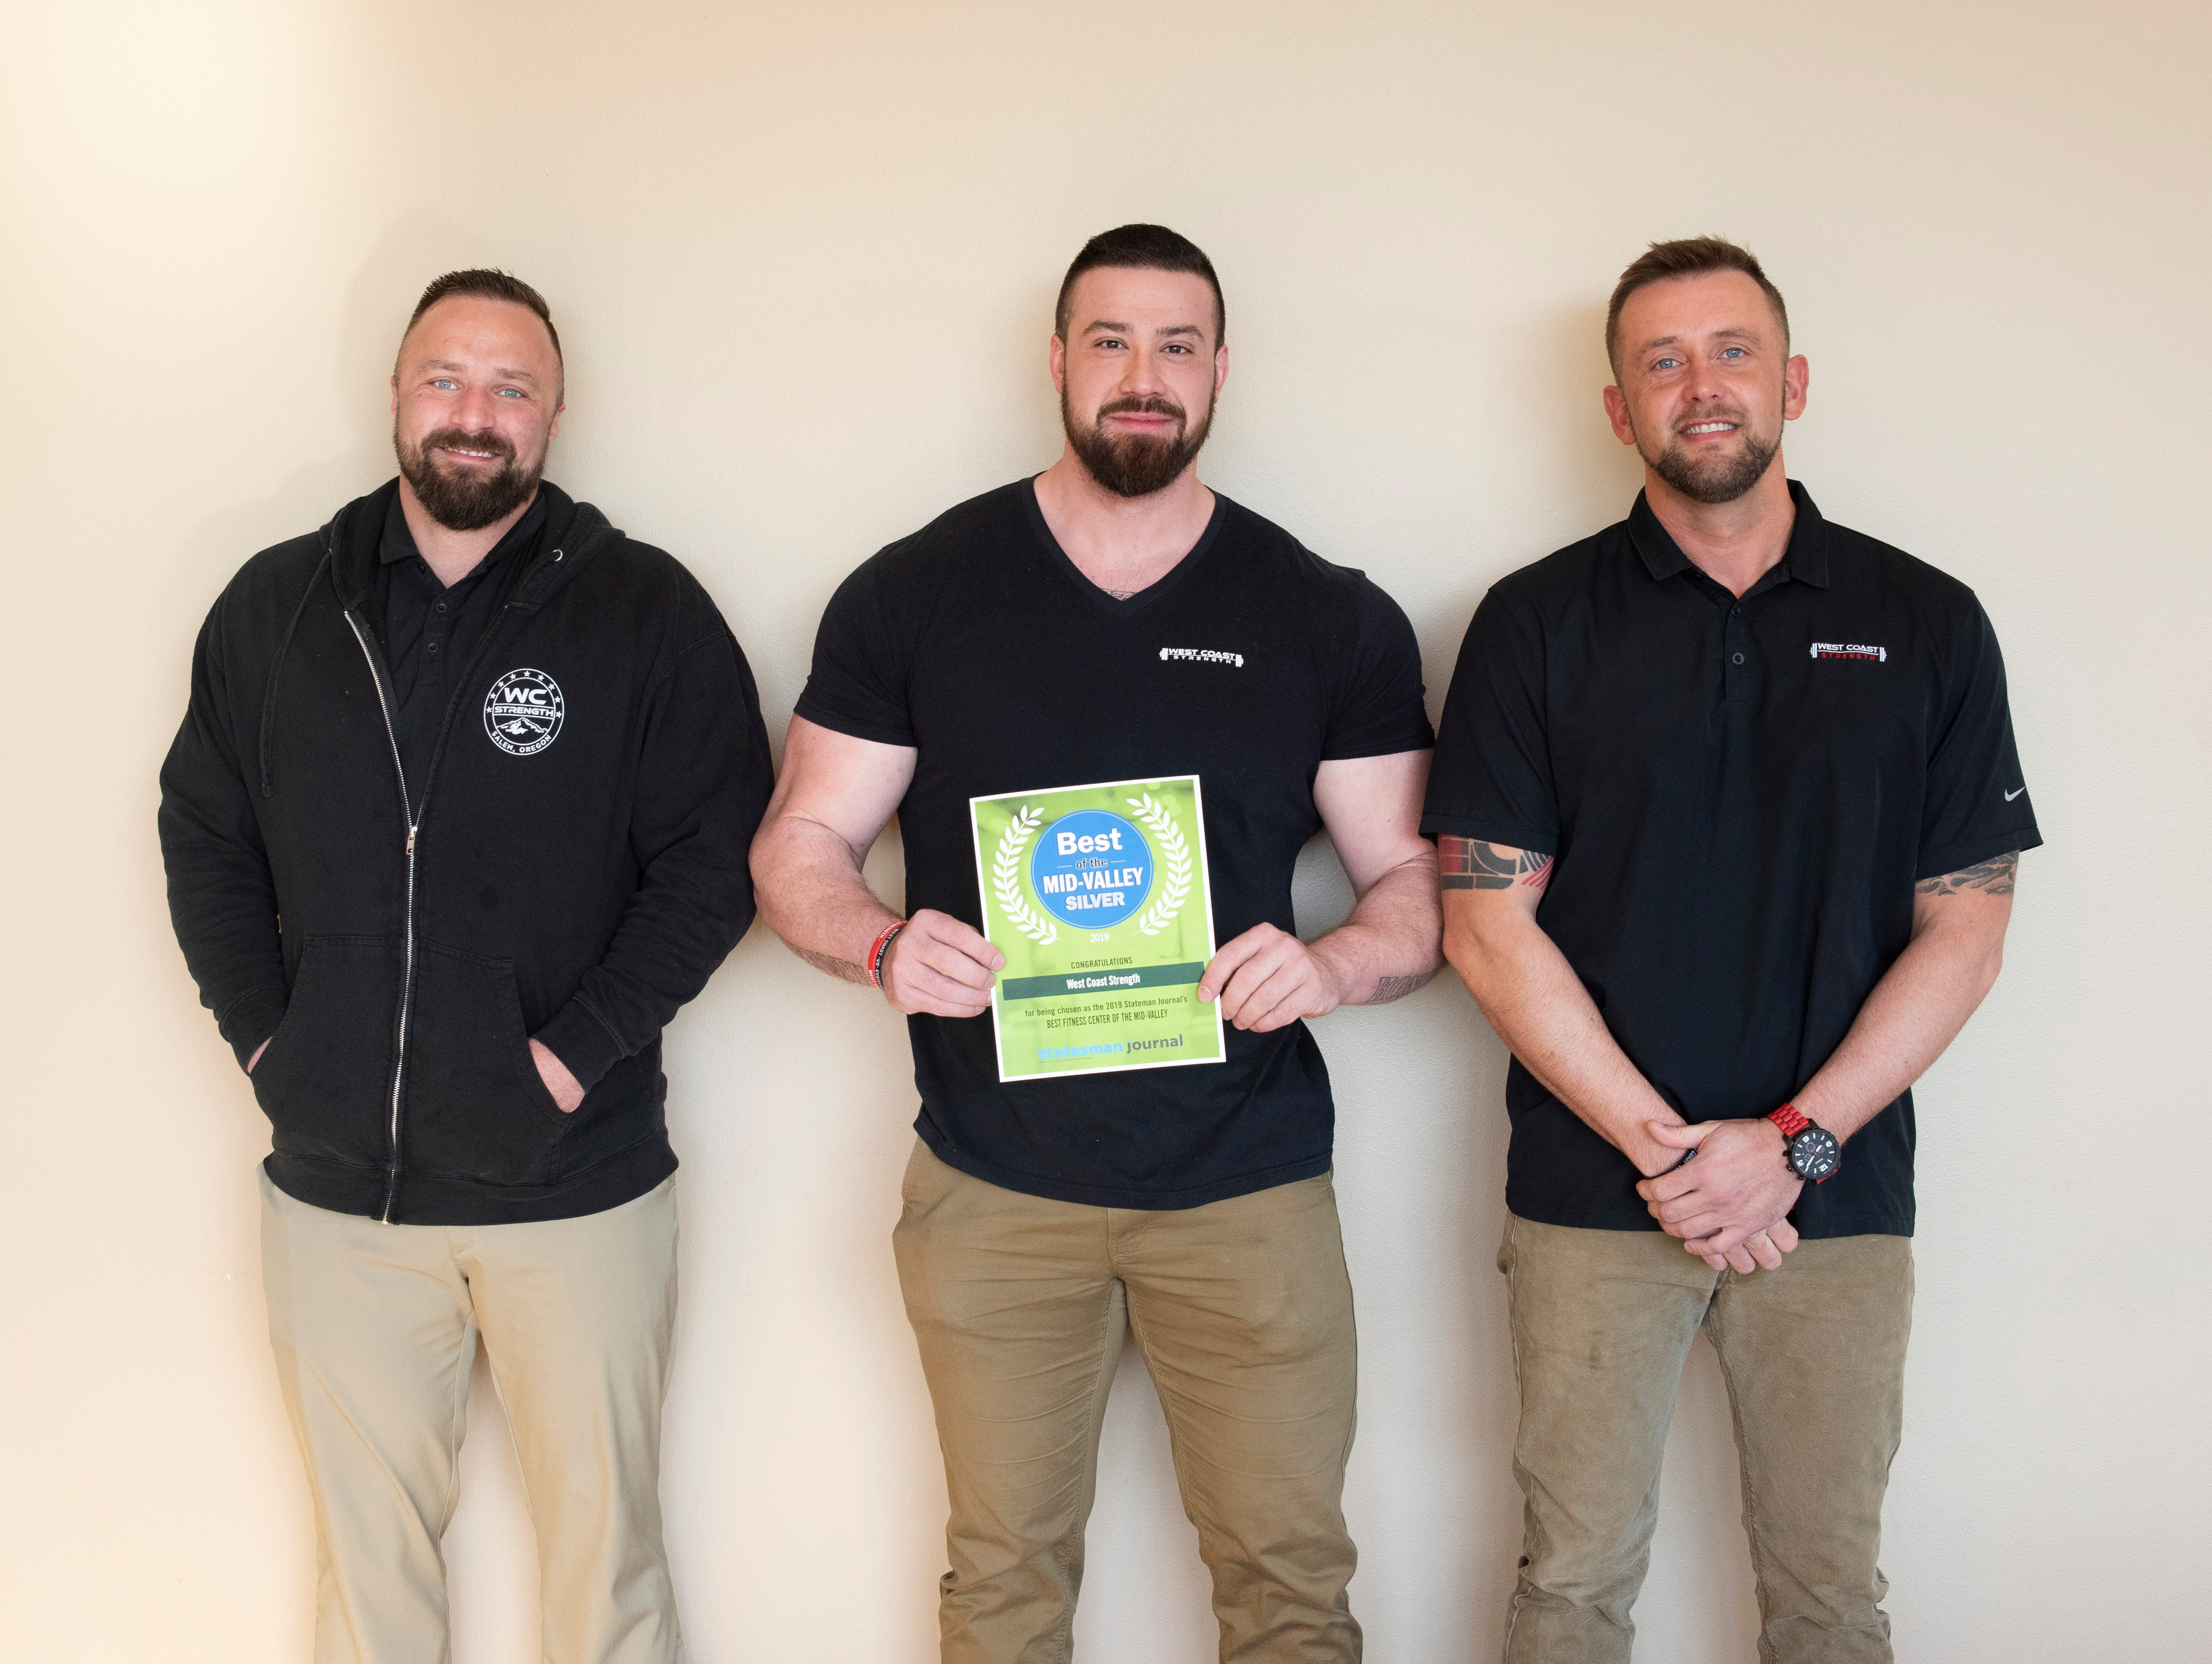 West Coast Strength won silver for Best Fitness Center in the 2019 Best of the Mid-Valley.